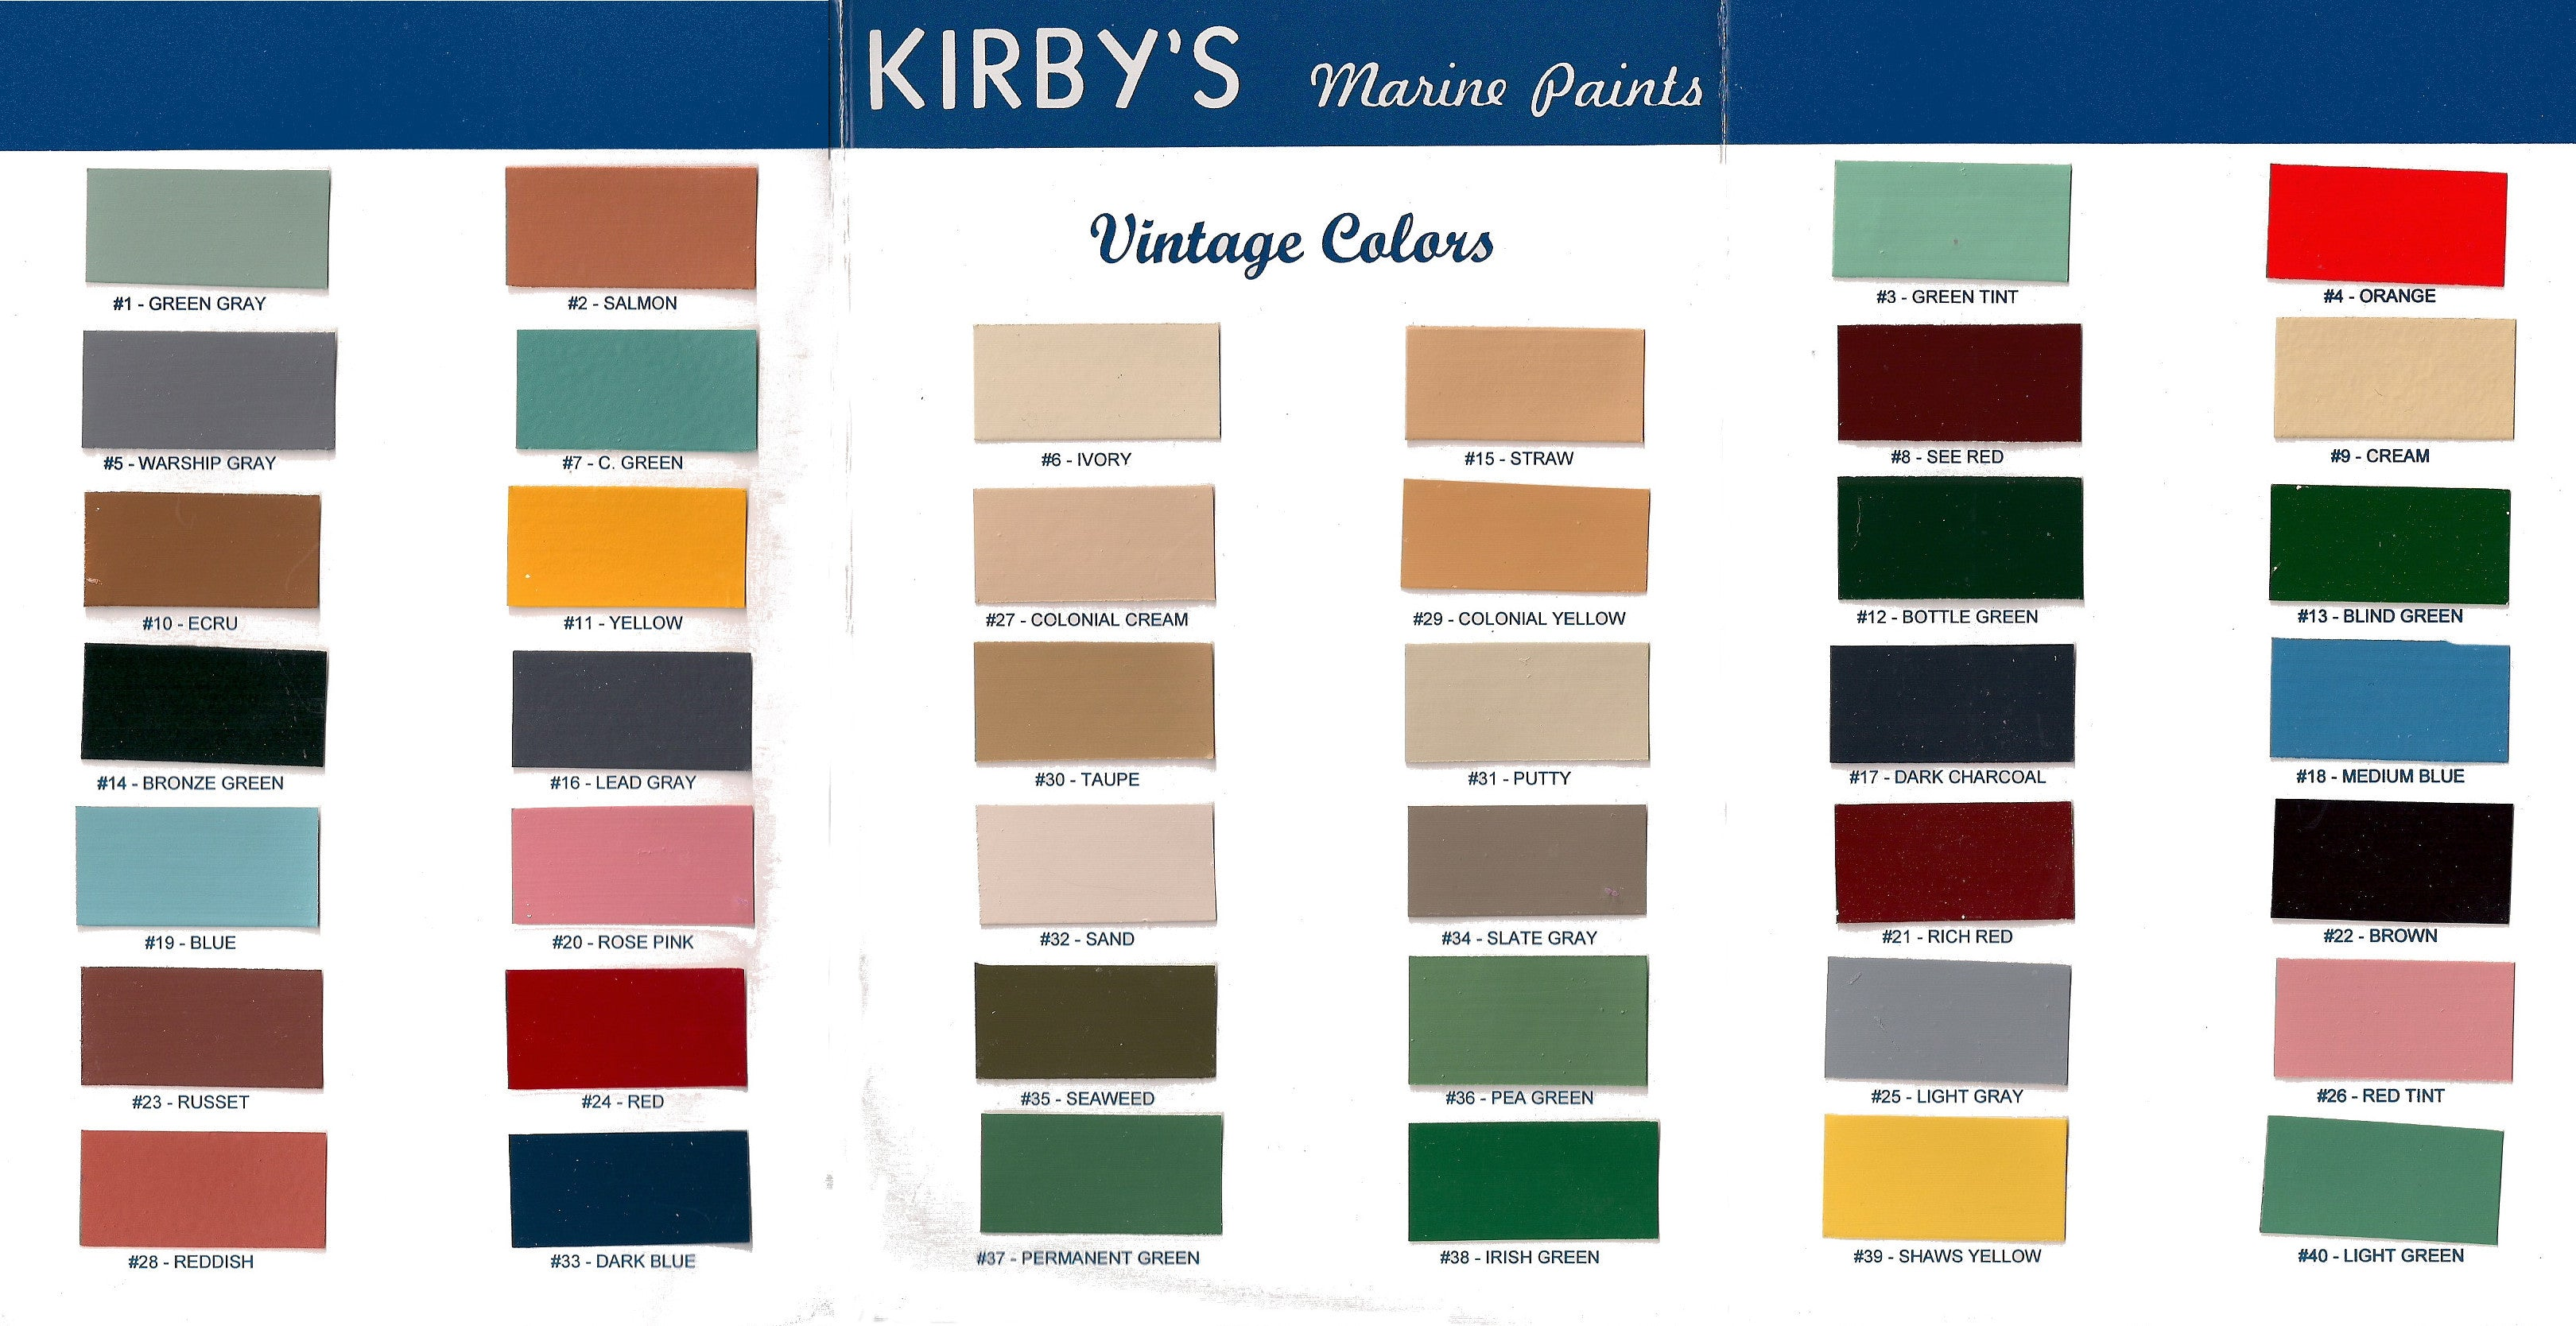 Kirbys Vintage Color Chart George Kirby Jr Paint Company